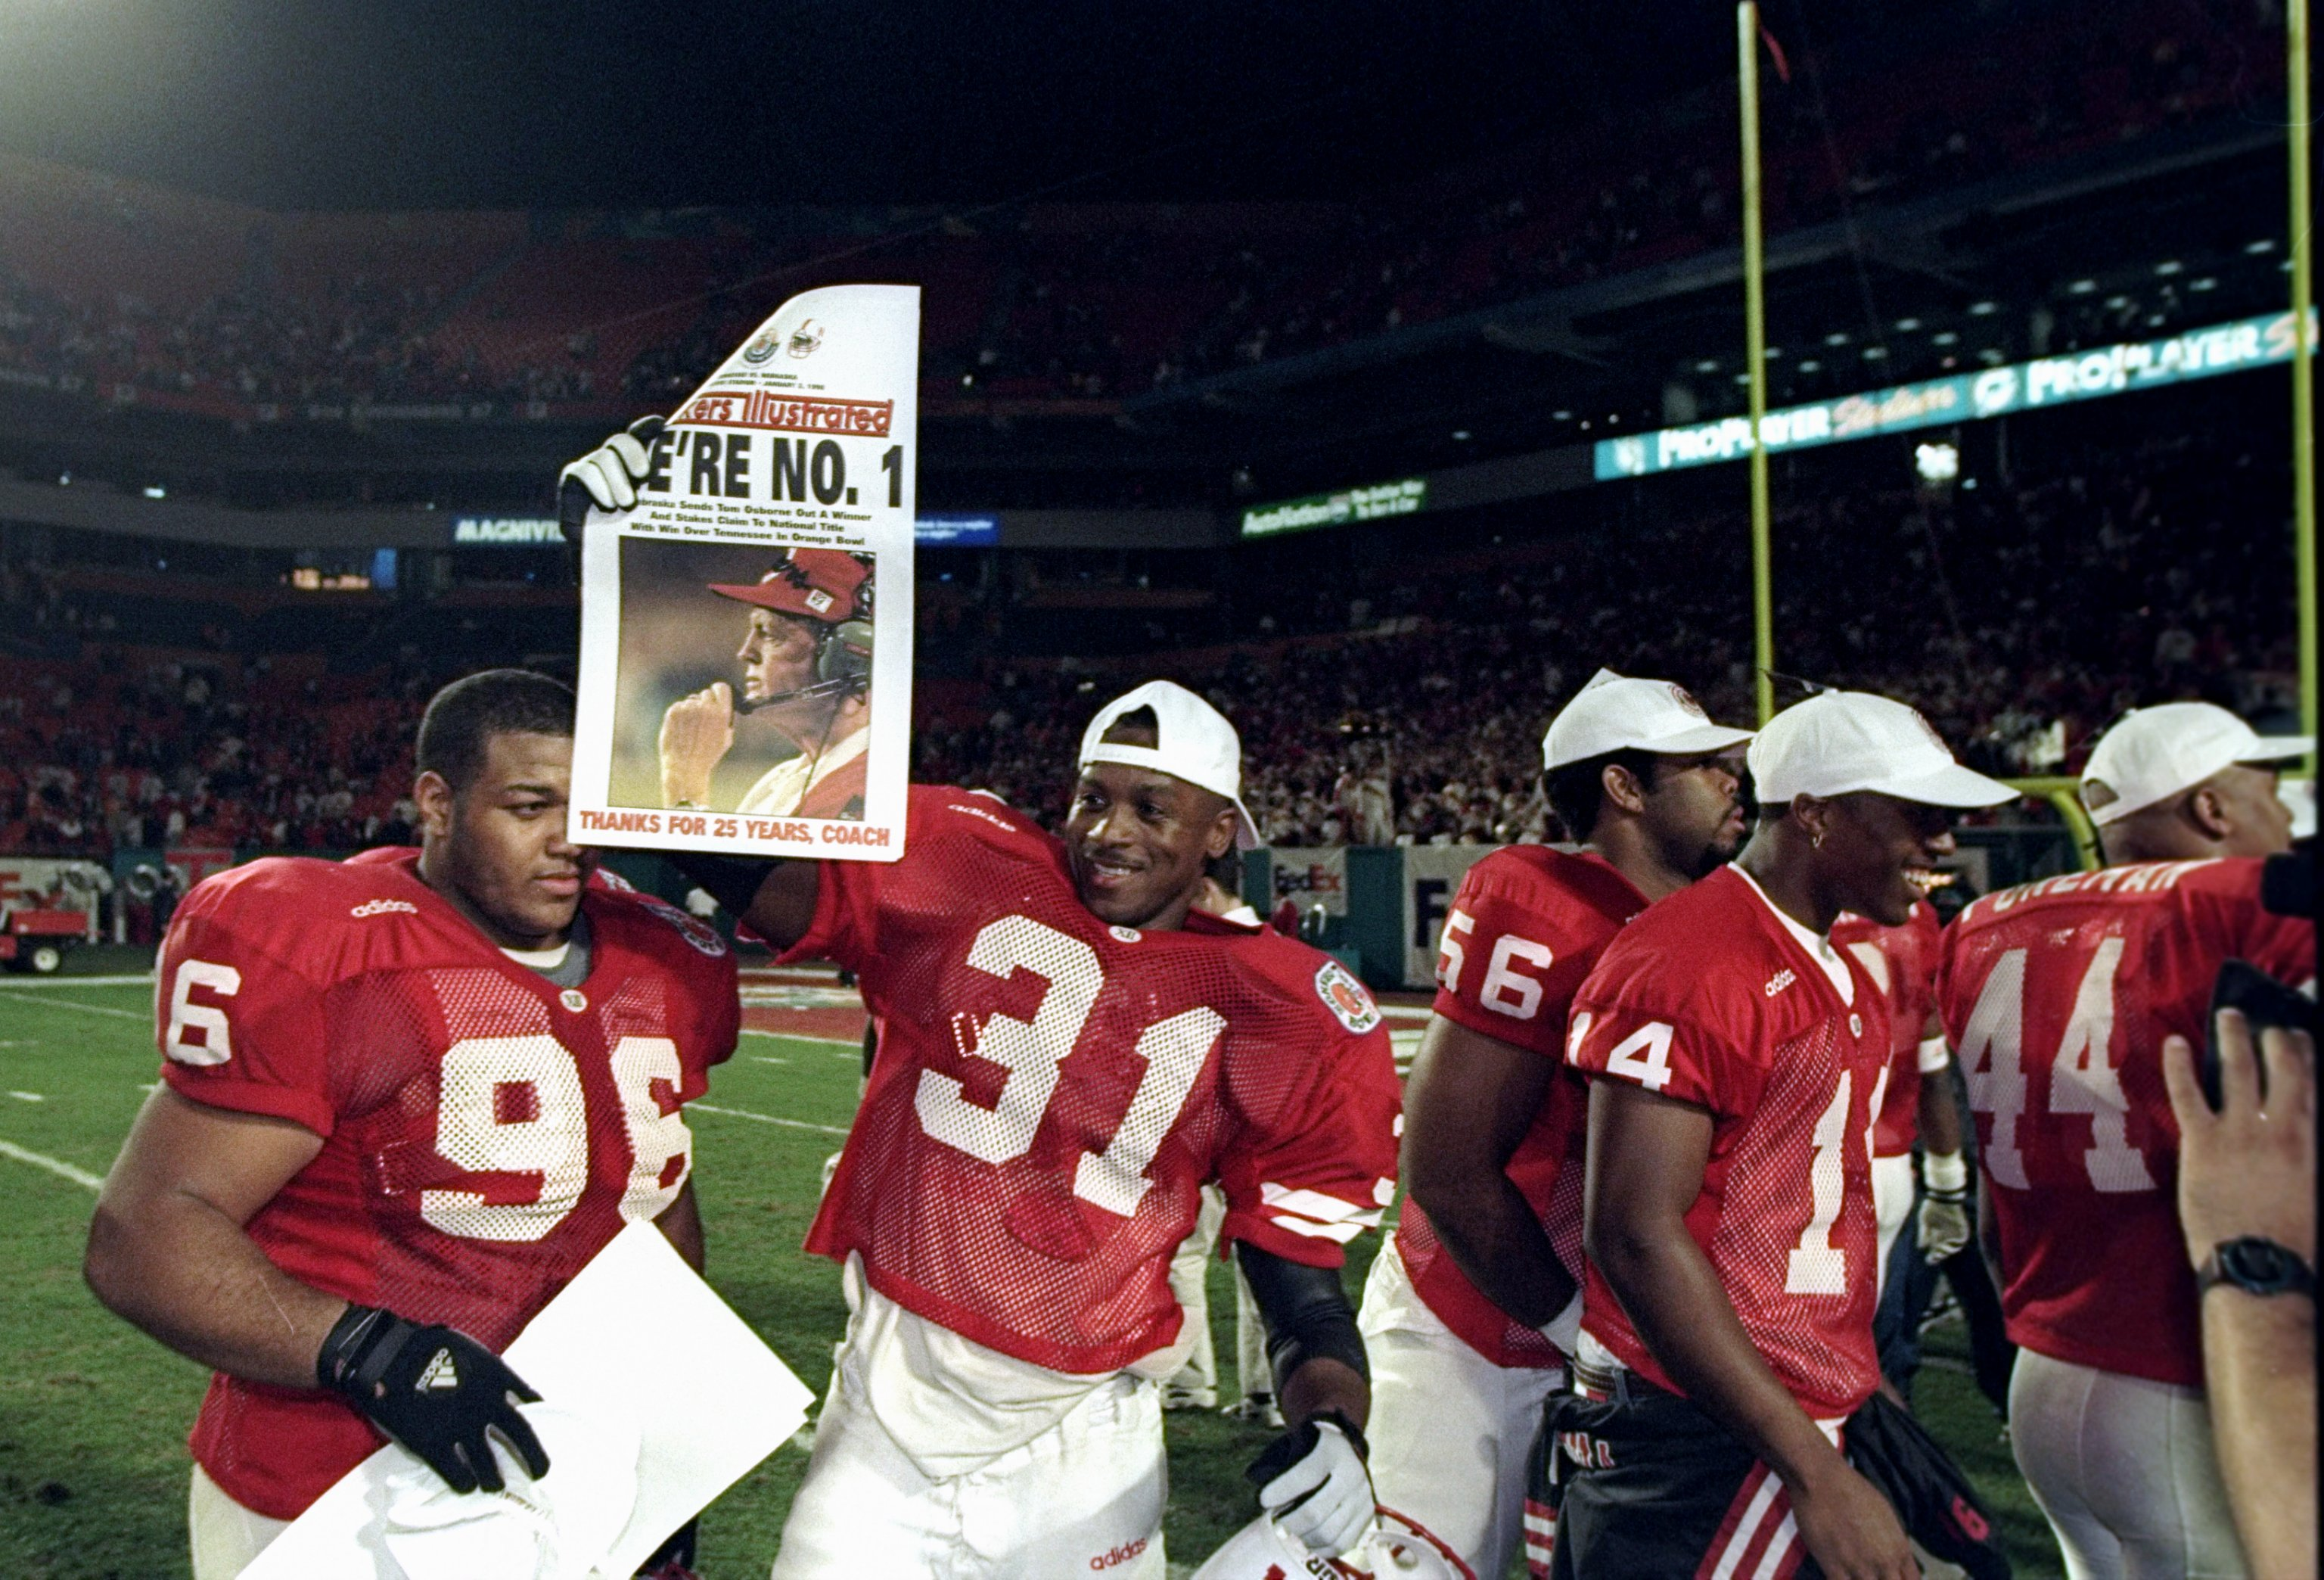 2 Jan 1998: Several Nebraska Cornhuskers players celebrate after the Orange Bowl against the Tennessee Volunteers at Pro Player Stadium in Miami, Florida. Nebraska won the game, 42-17.